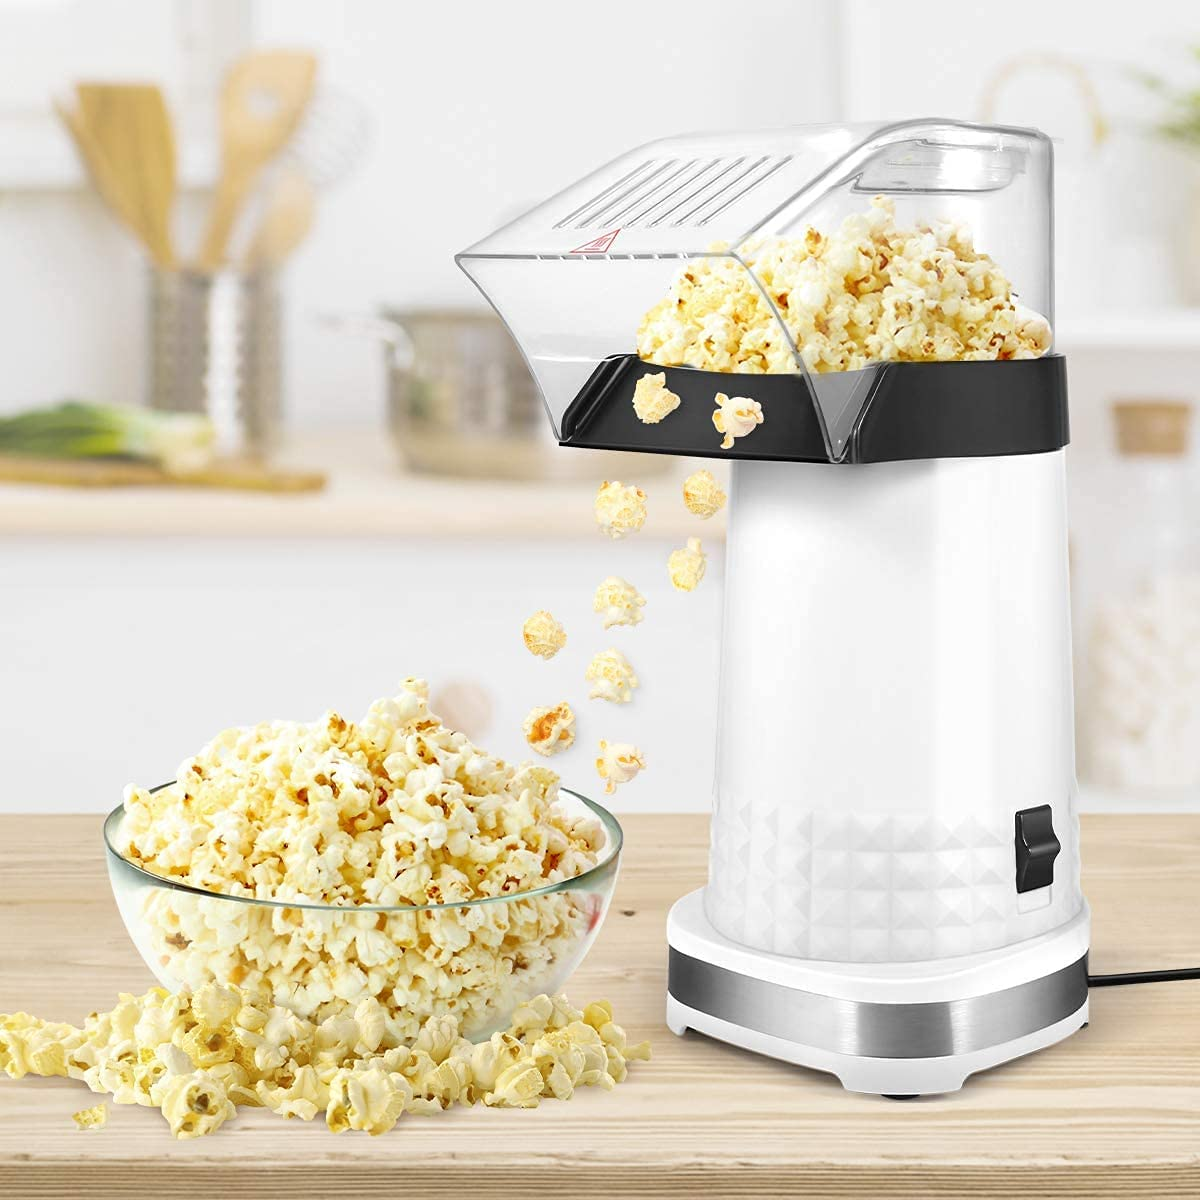 Popcorn Maker, 1200W Hot Air Popper Popcorn Machine, 99% Poping Rate, Electric Popcorn Popper With Measuring Cup and Removable Cover for Home, Family and Party, No Oil Need Mini Popcorn Maker